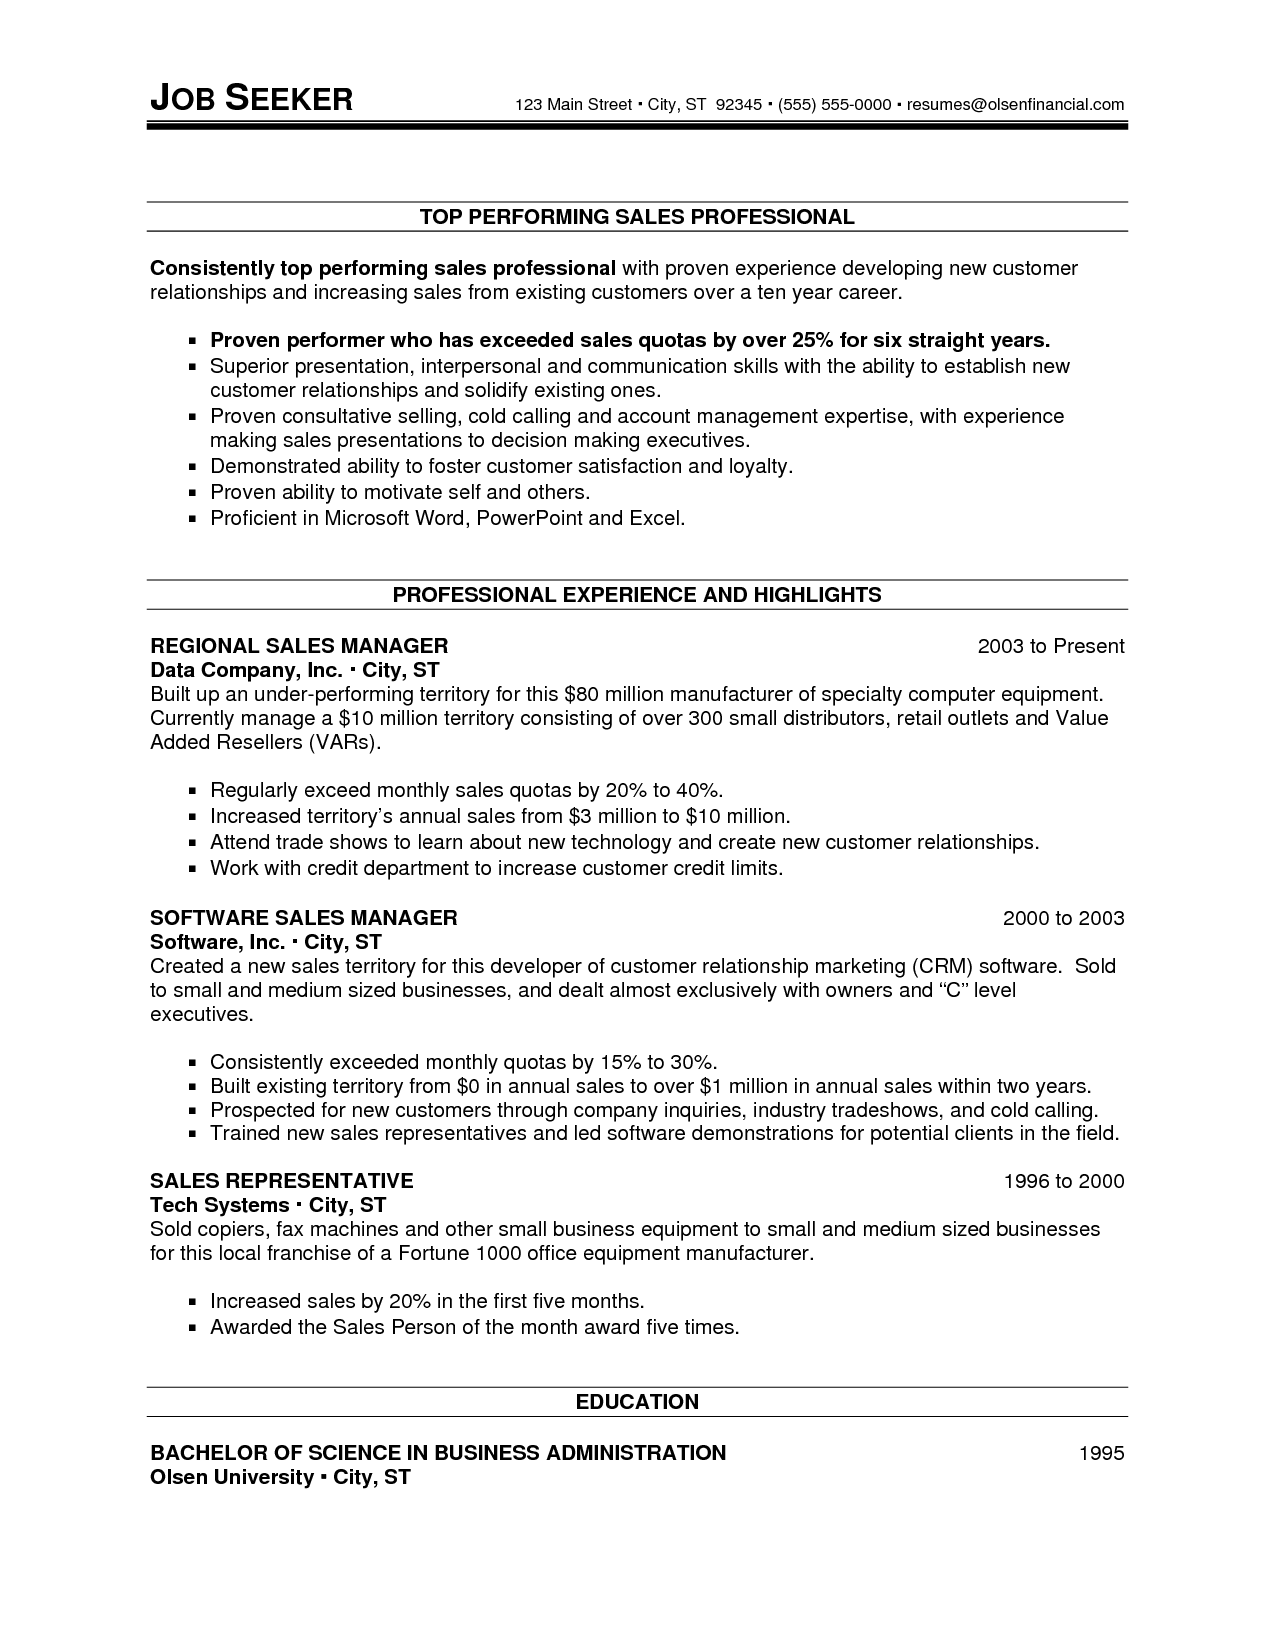 Sales experience resume example